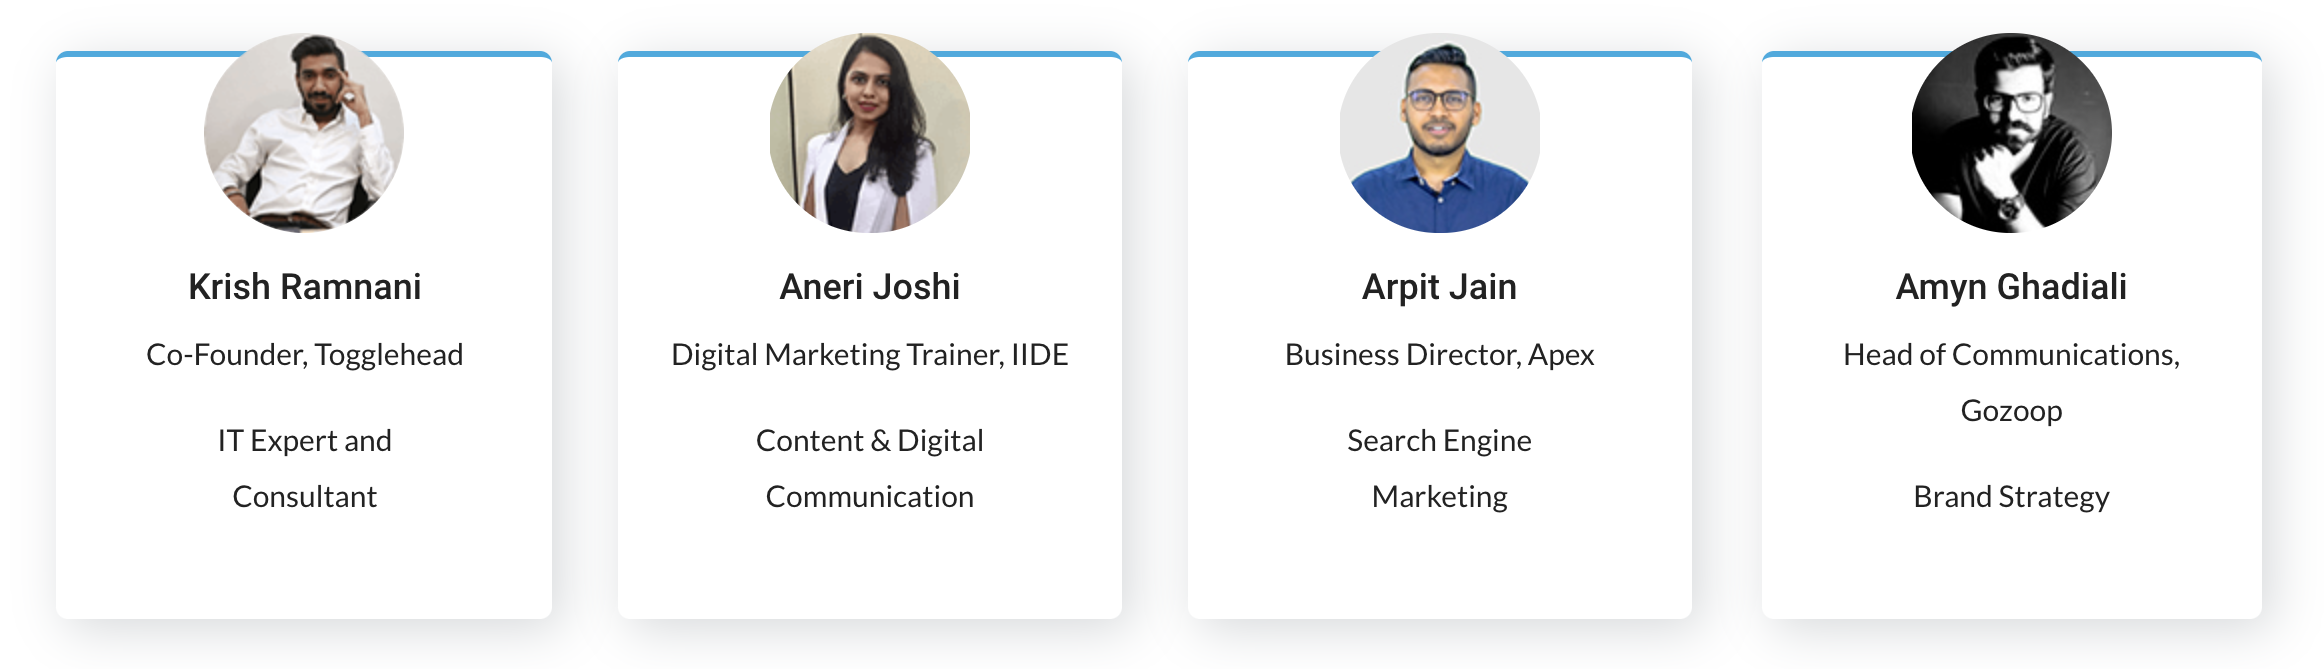 Digital Marketing Course in Patiala - IIDE Faculty - Online Digital Marketing Course